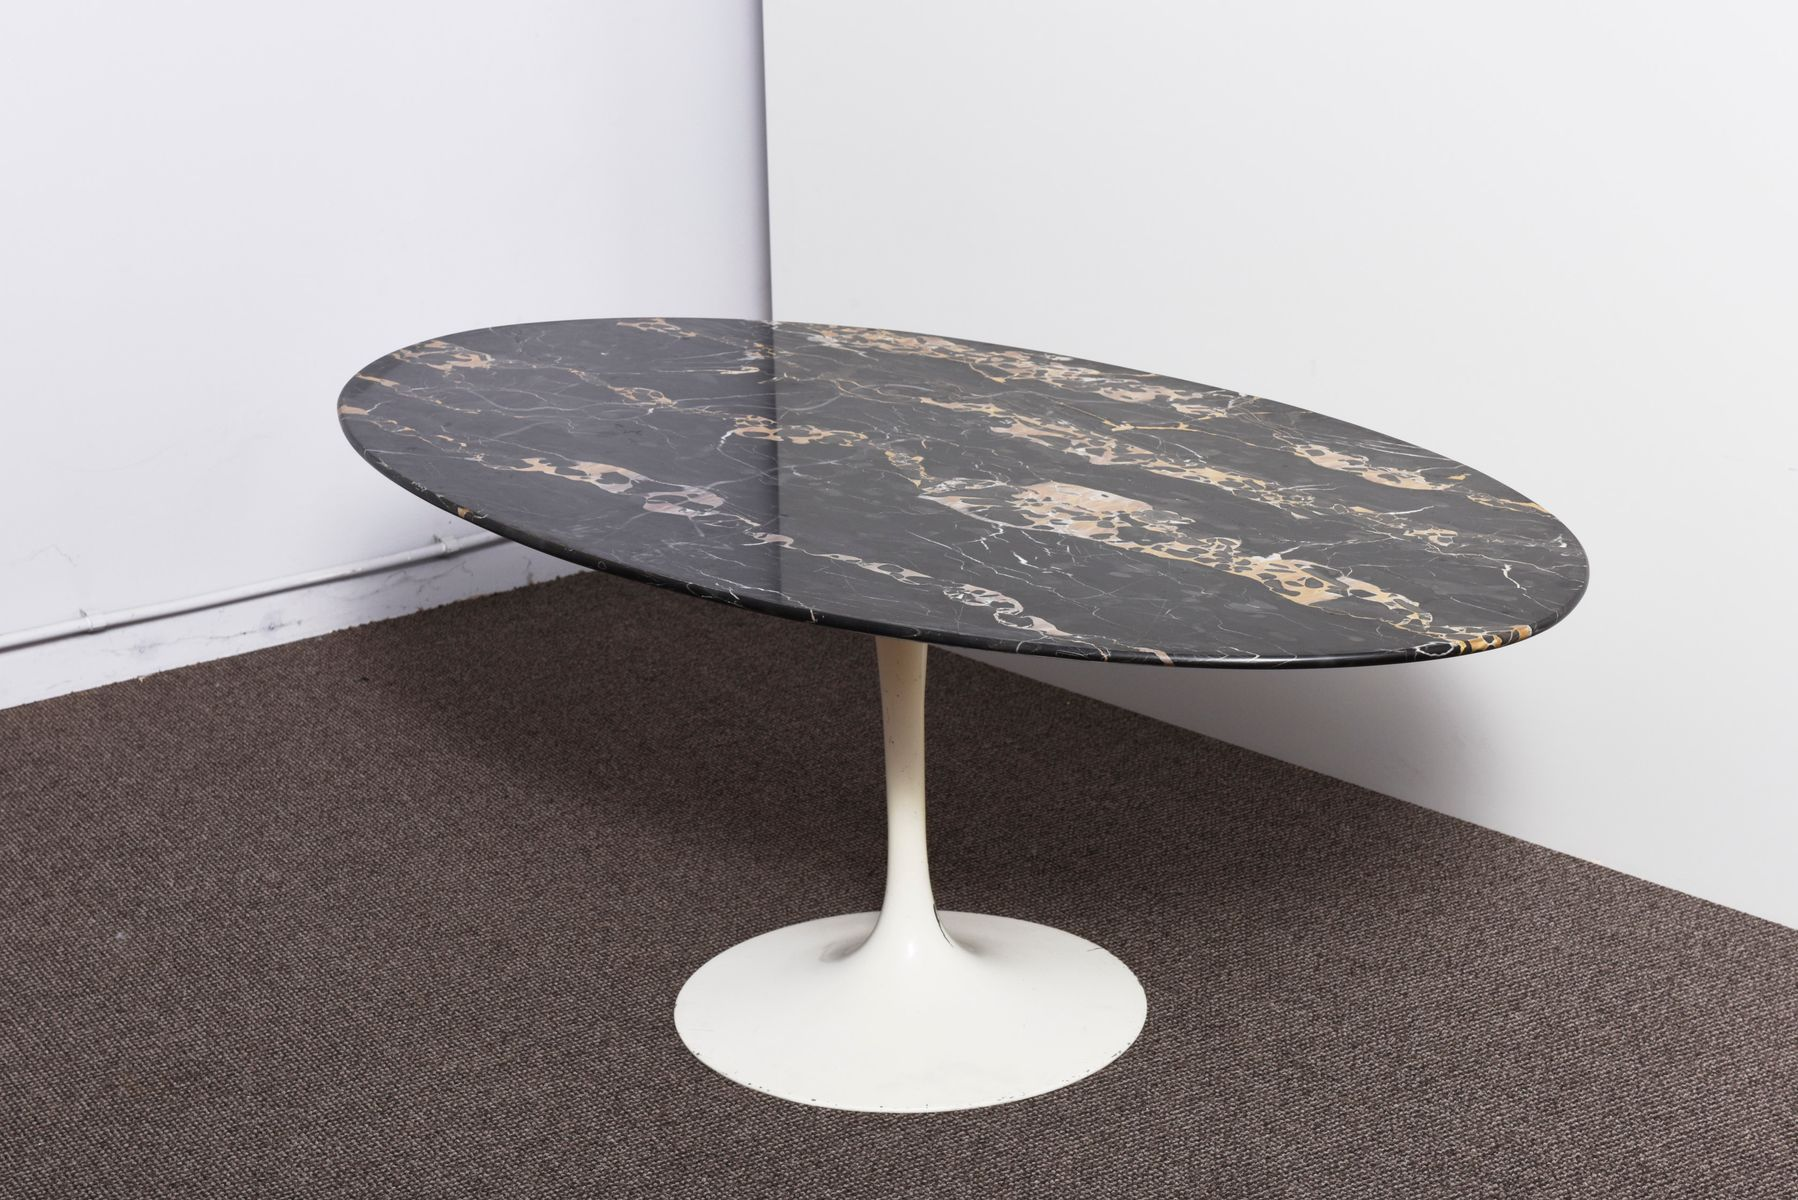 Table basse tulip noire en marbre par eero saarinen pour knoll international en vente sur pamono Table basse saarinen